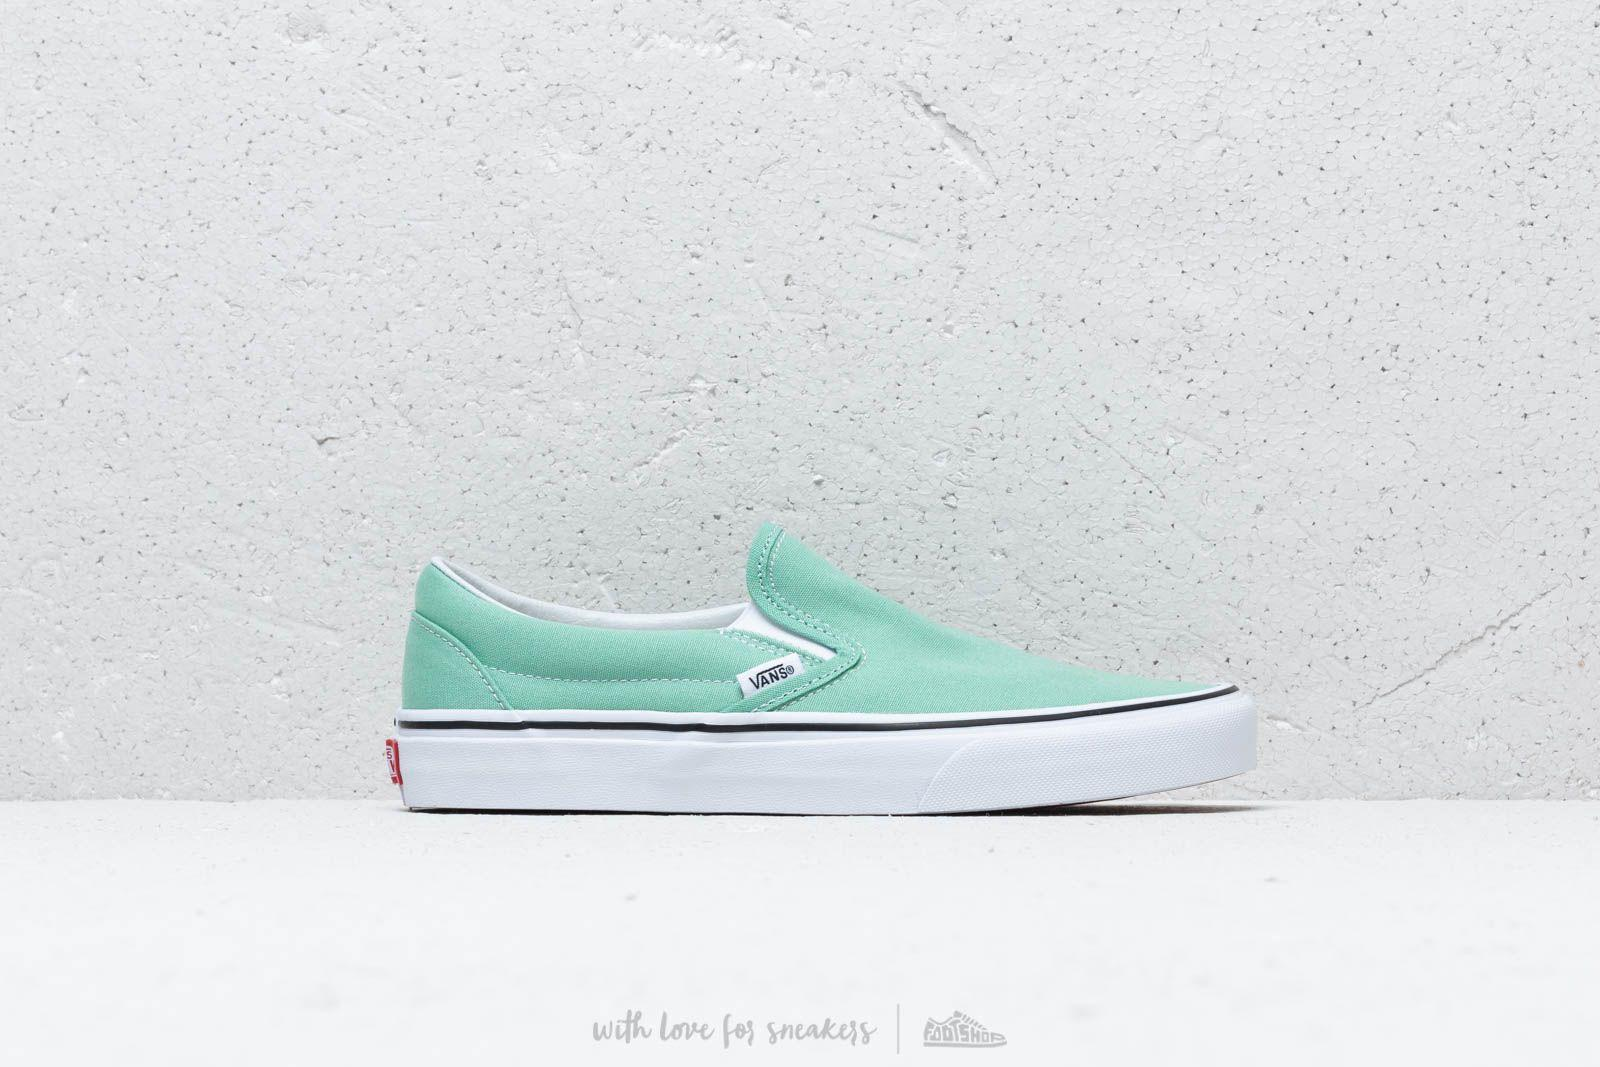 987c601ce15c Vans - Classic Slip-on Neptune Green  True White for Men - Lyst. View  fullscreen